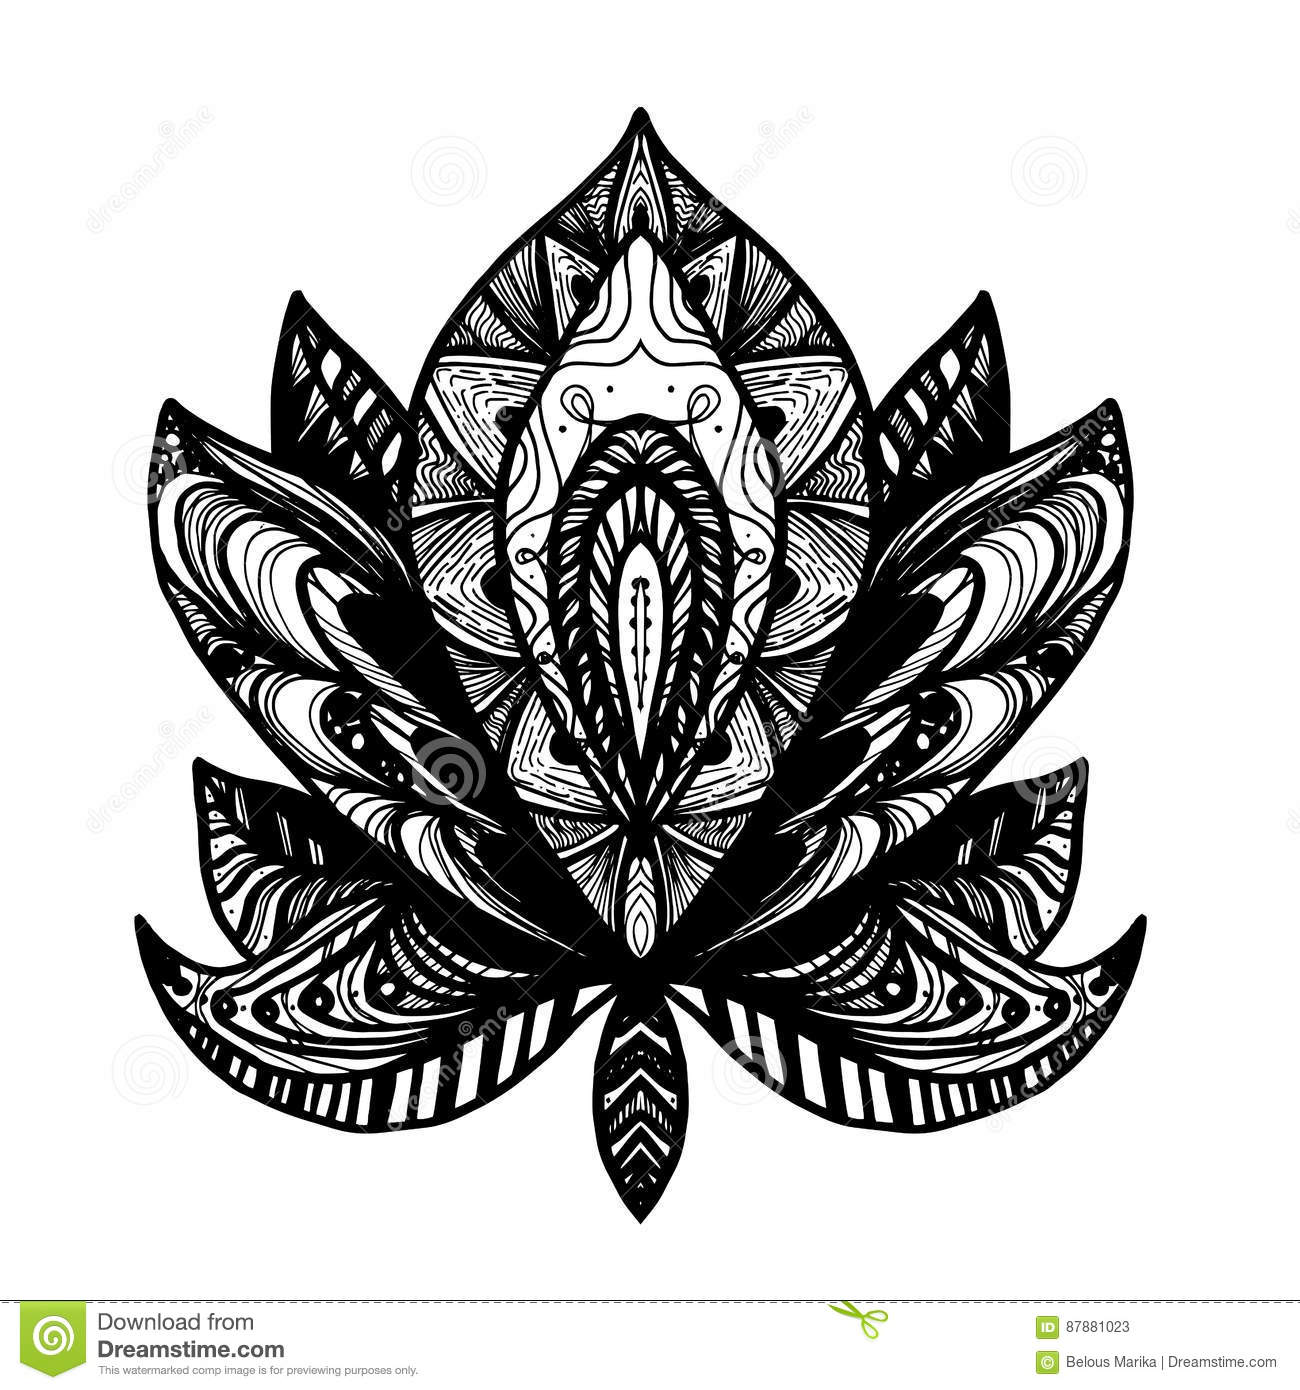 Flower lotus tattoo stock illustration illustration of buddhism download flower lotus tattoo stock illustration illustration of buddhism 87881023 izmirmasajfo